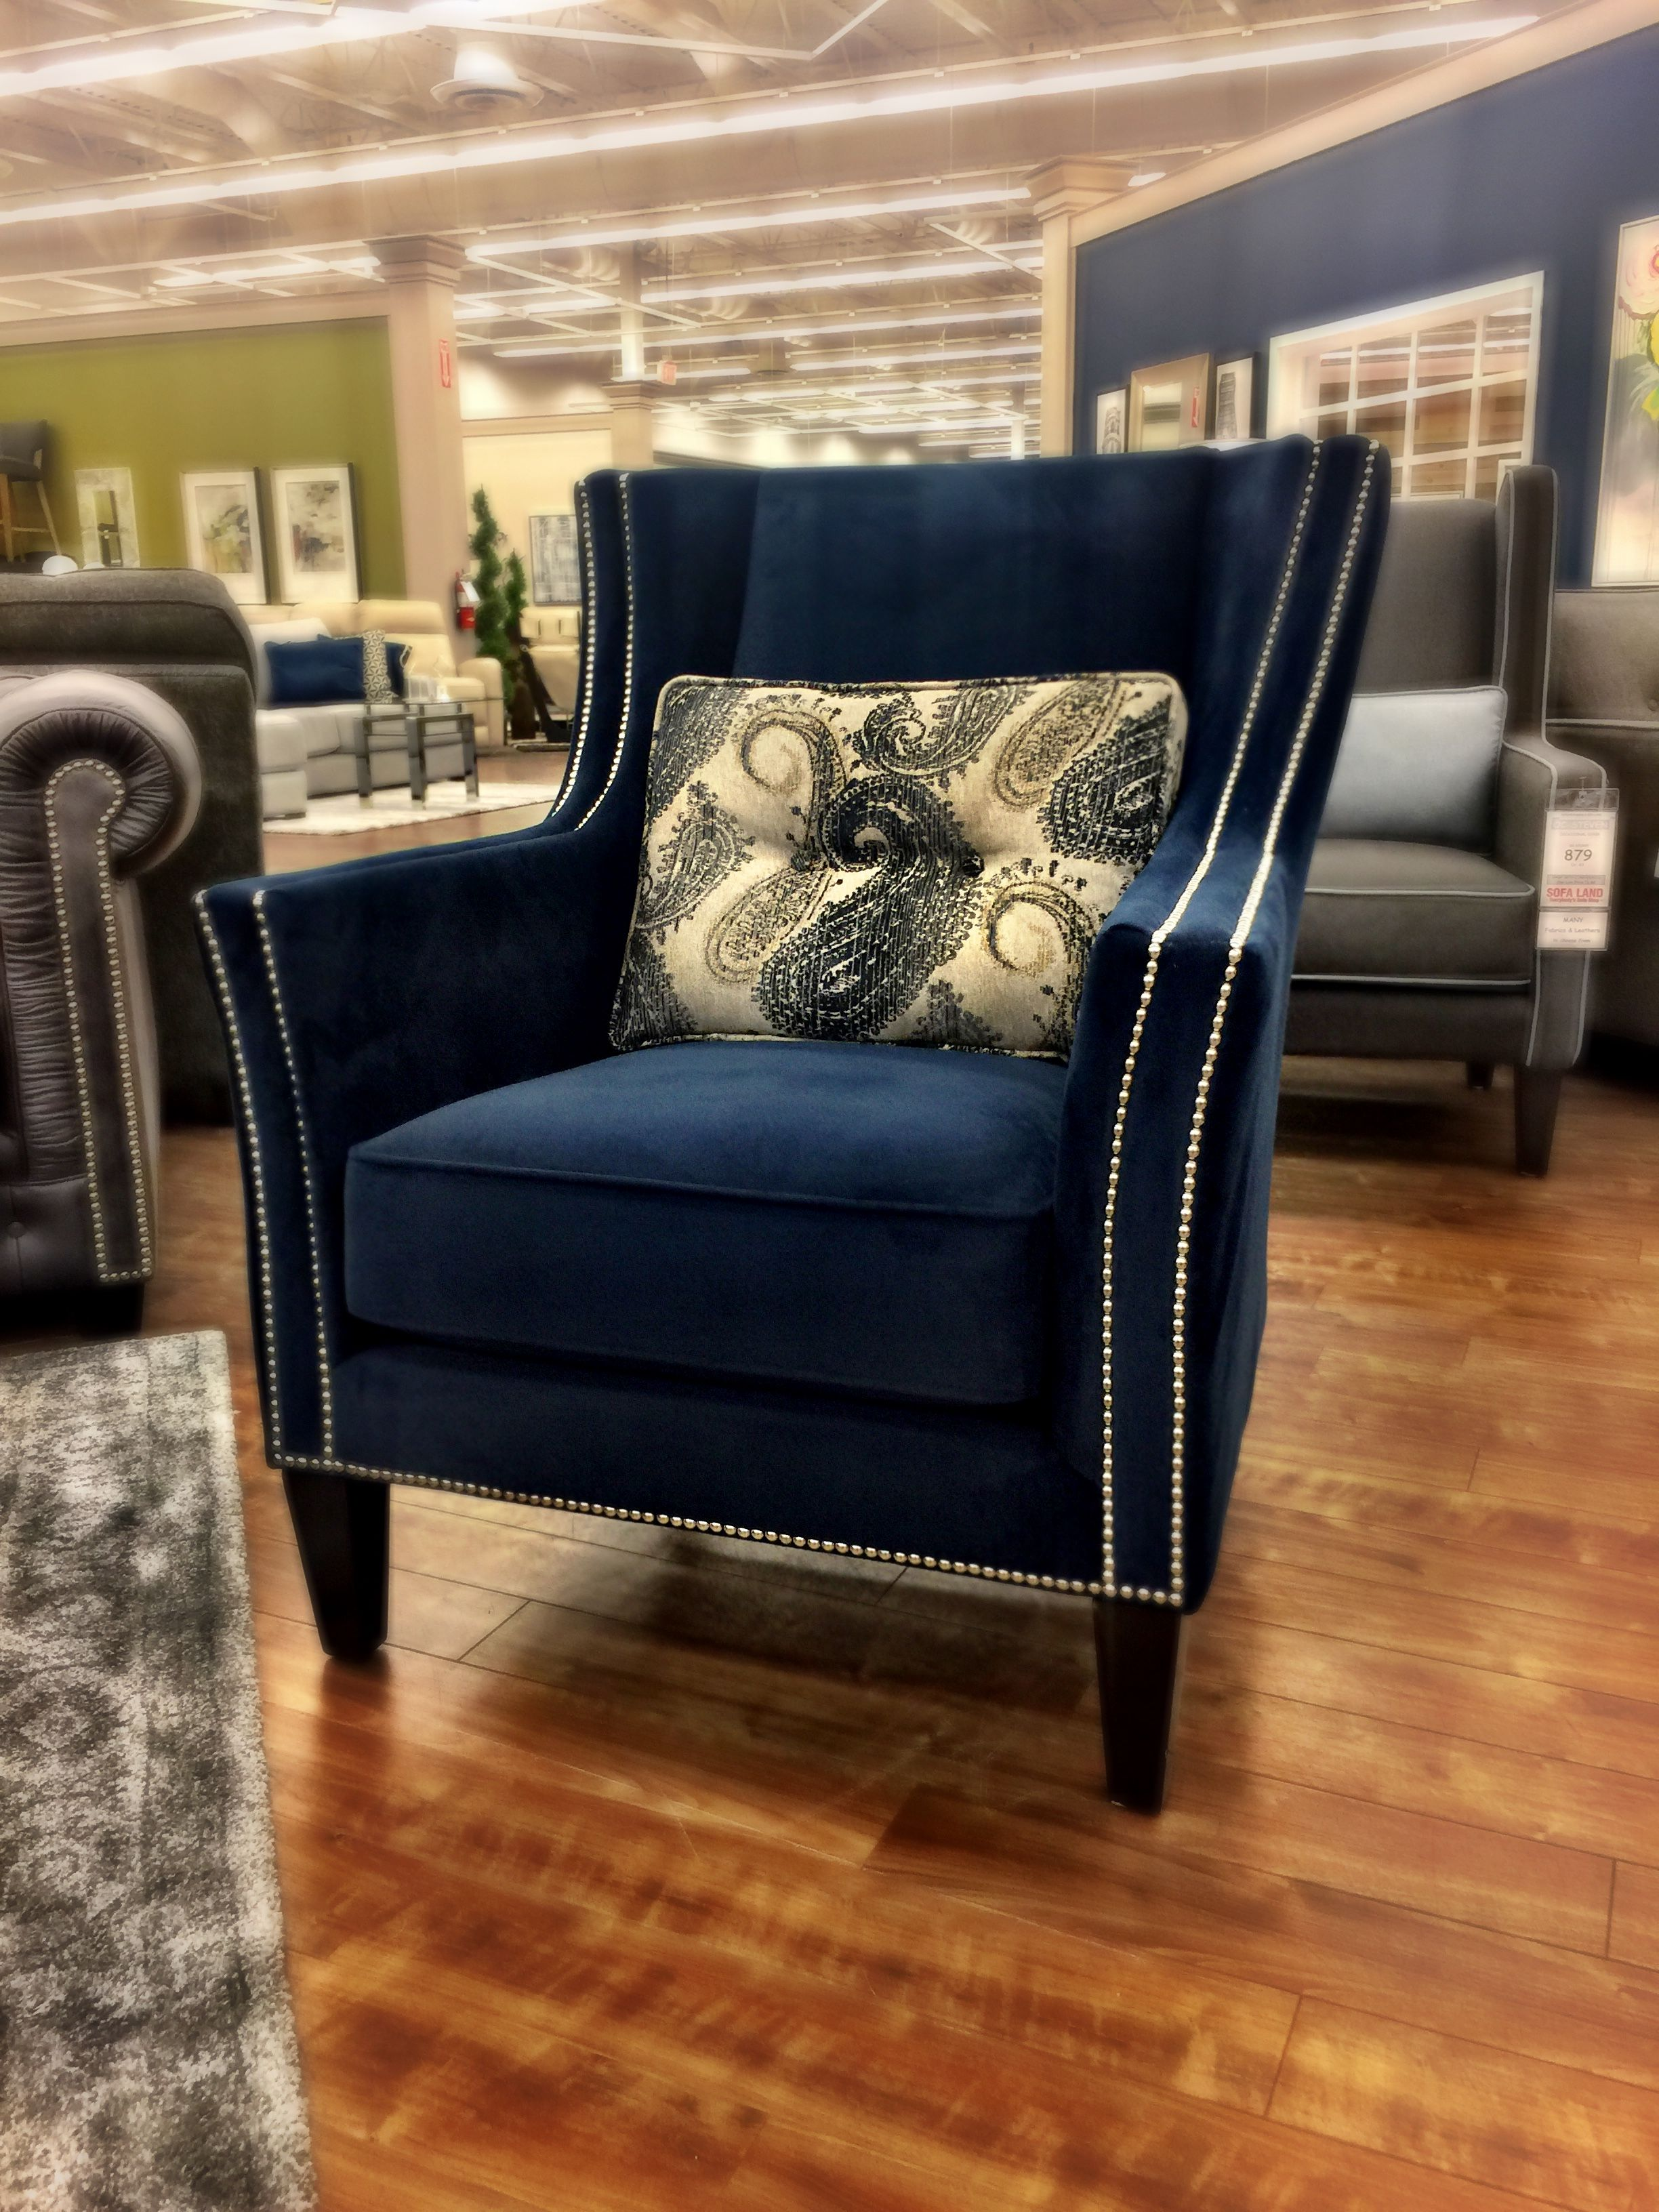 Our Bell chair looks absolutely stunning dressed in blue ...